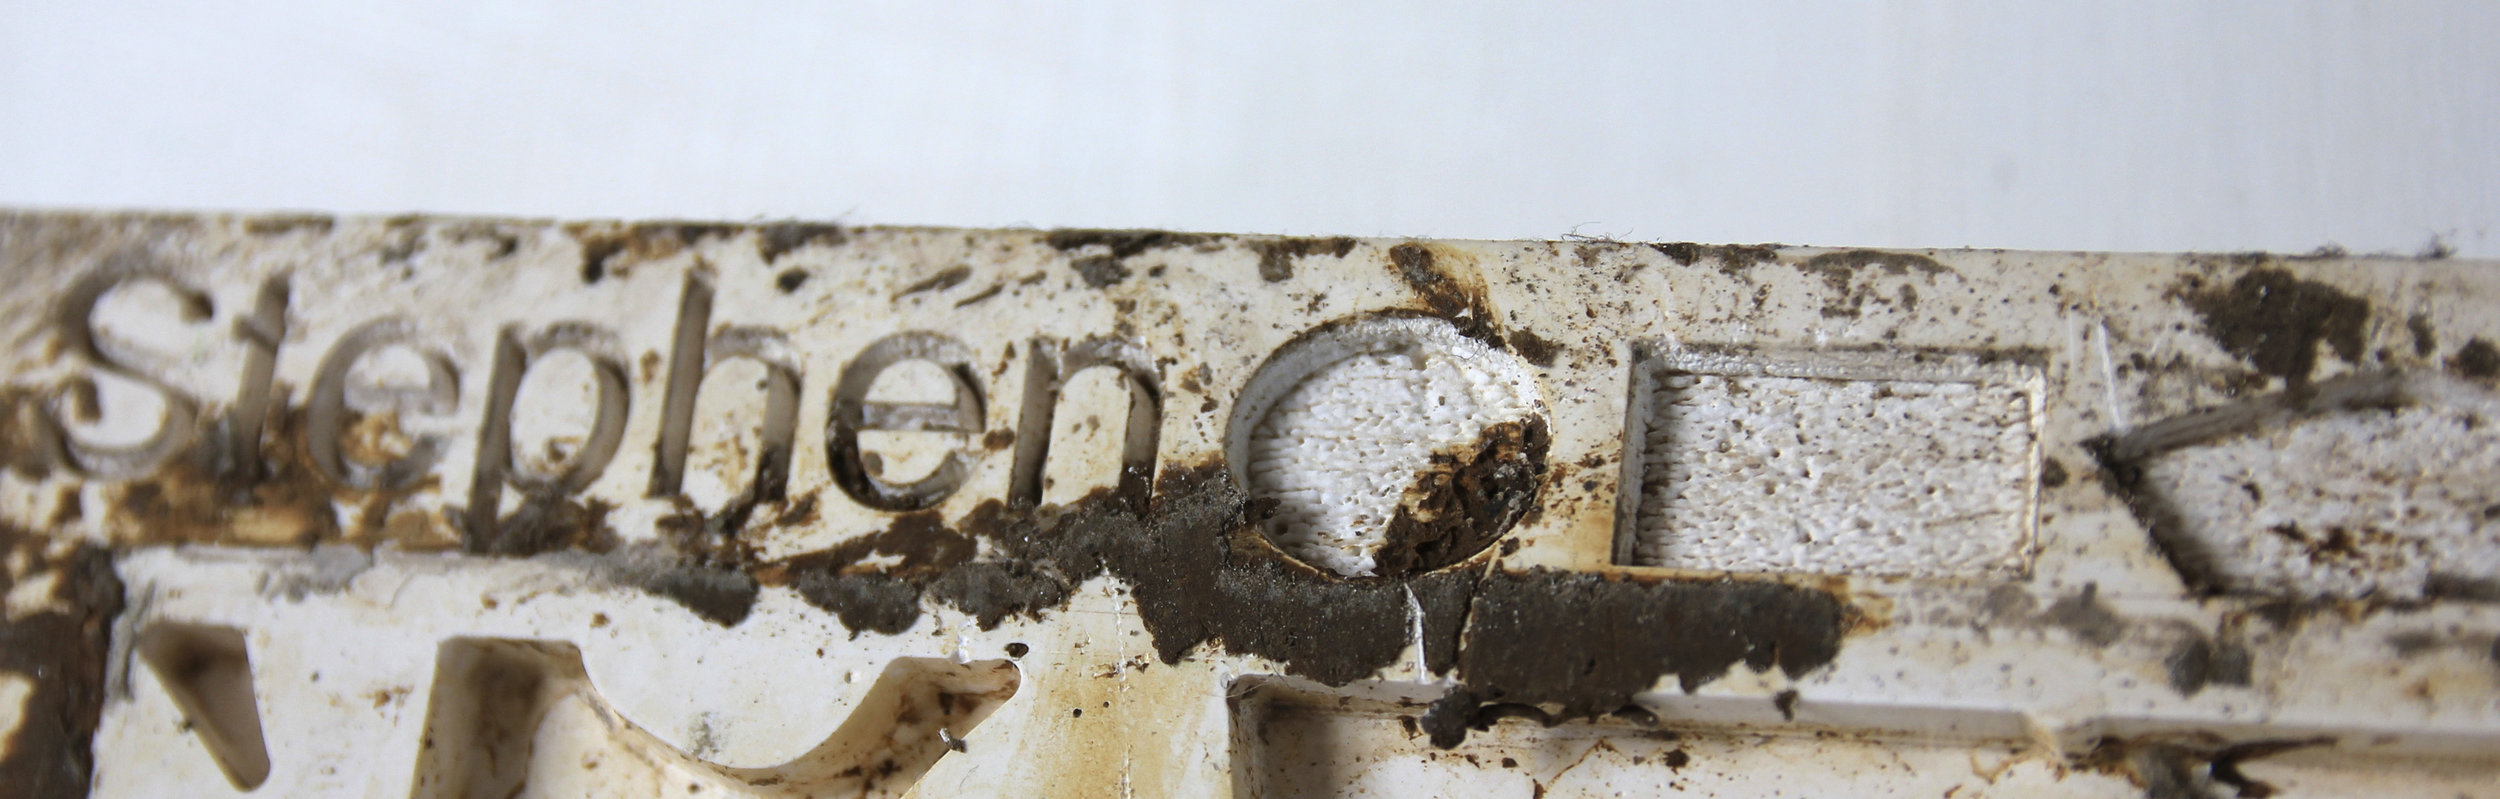 Laser etching onto plaster, as a cast for the clay (this is a photograph taken later on, so excuse the mud).